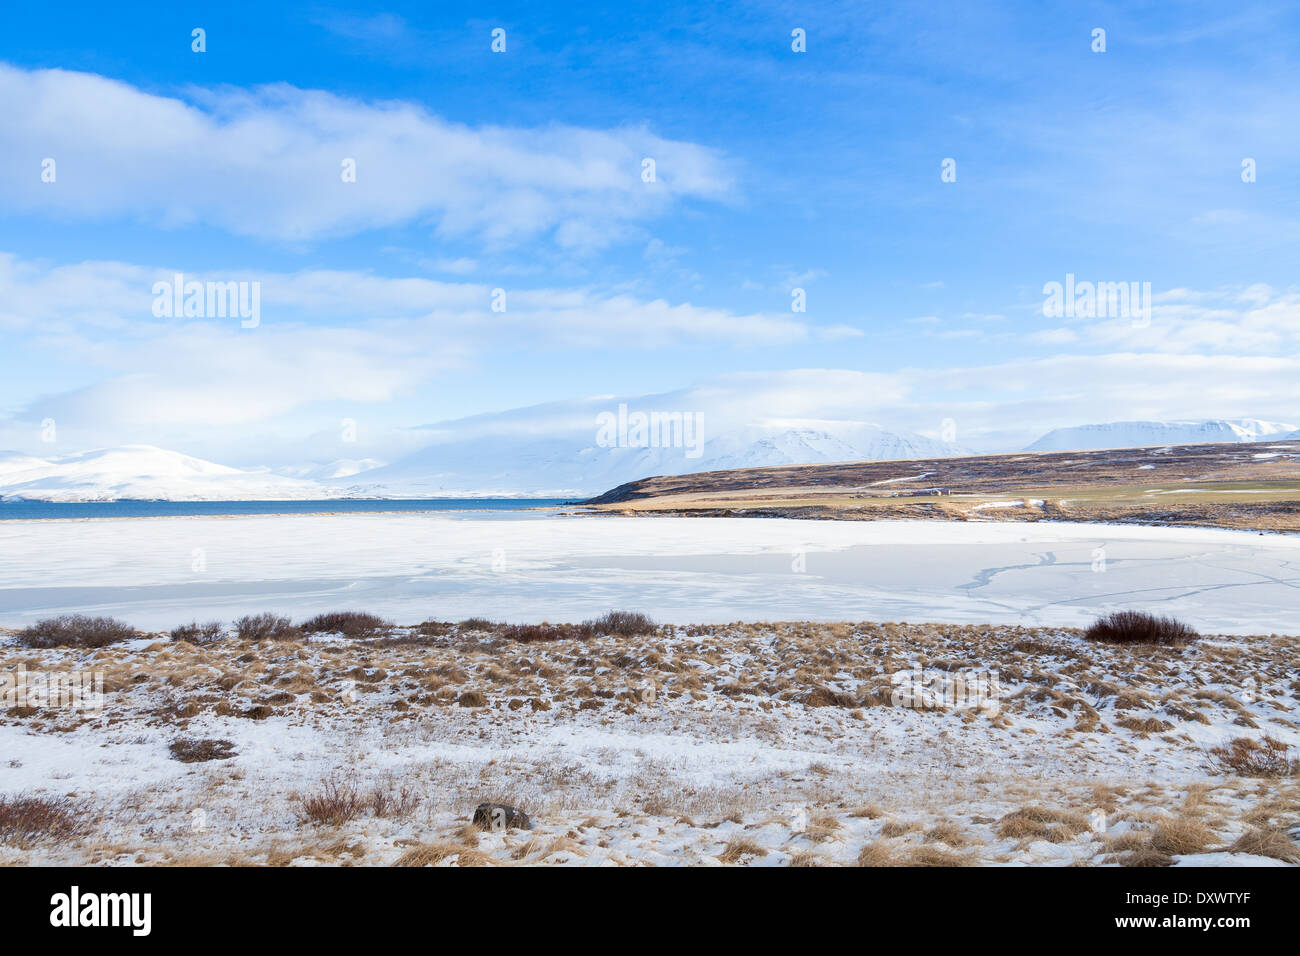 Frozen fjord in Iceland - Stock Image